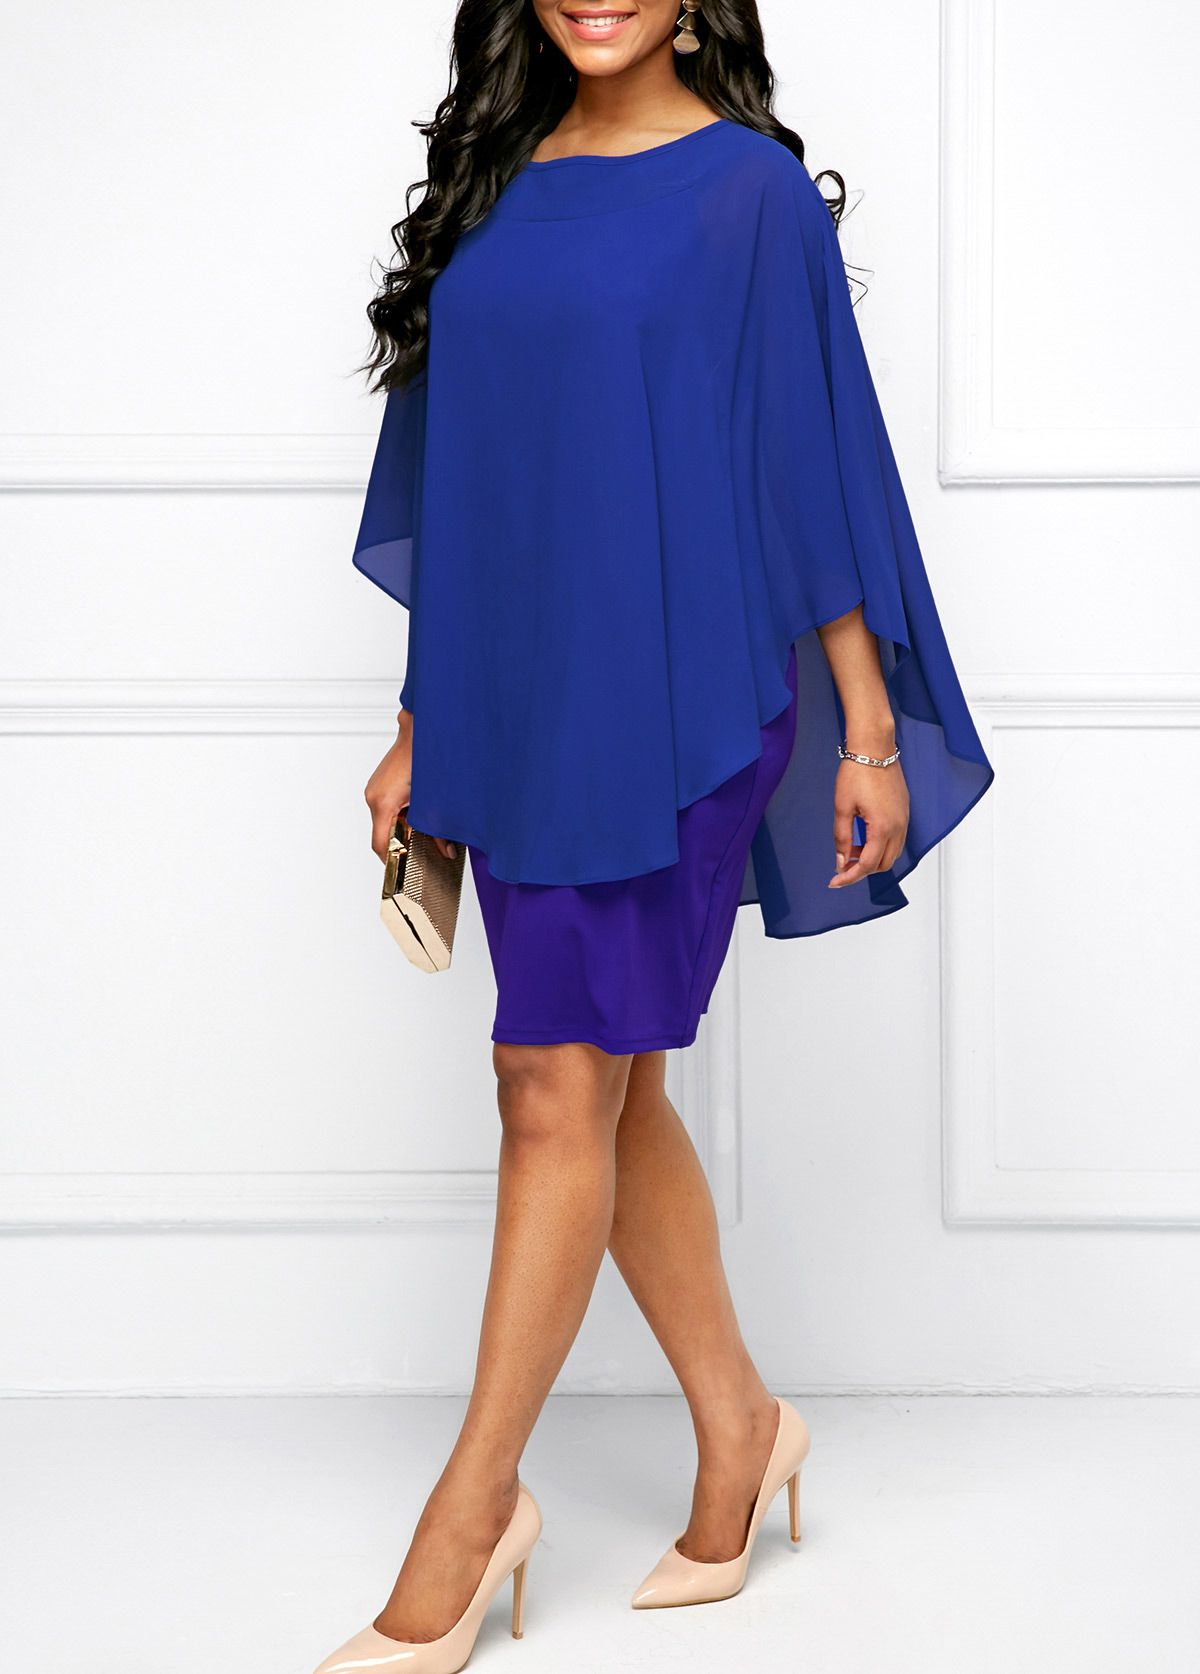 d68cda1ef44 Round Neck Royal Blue Chiffon Overlay Dress